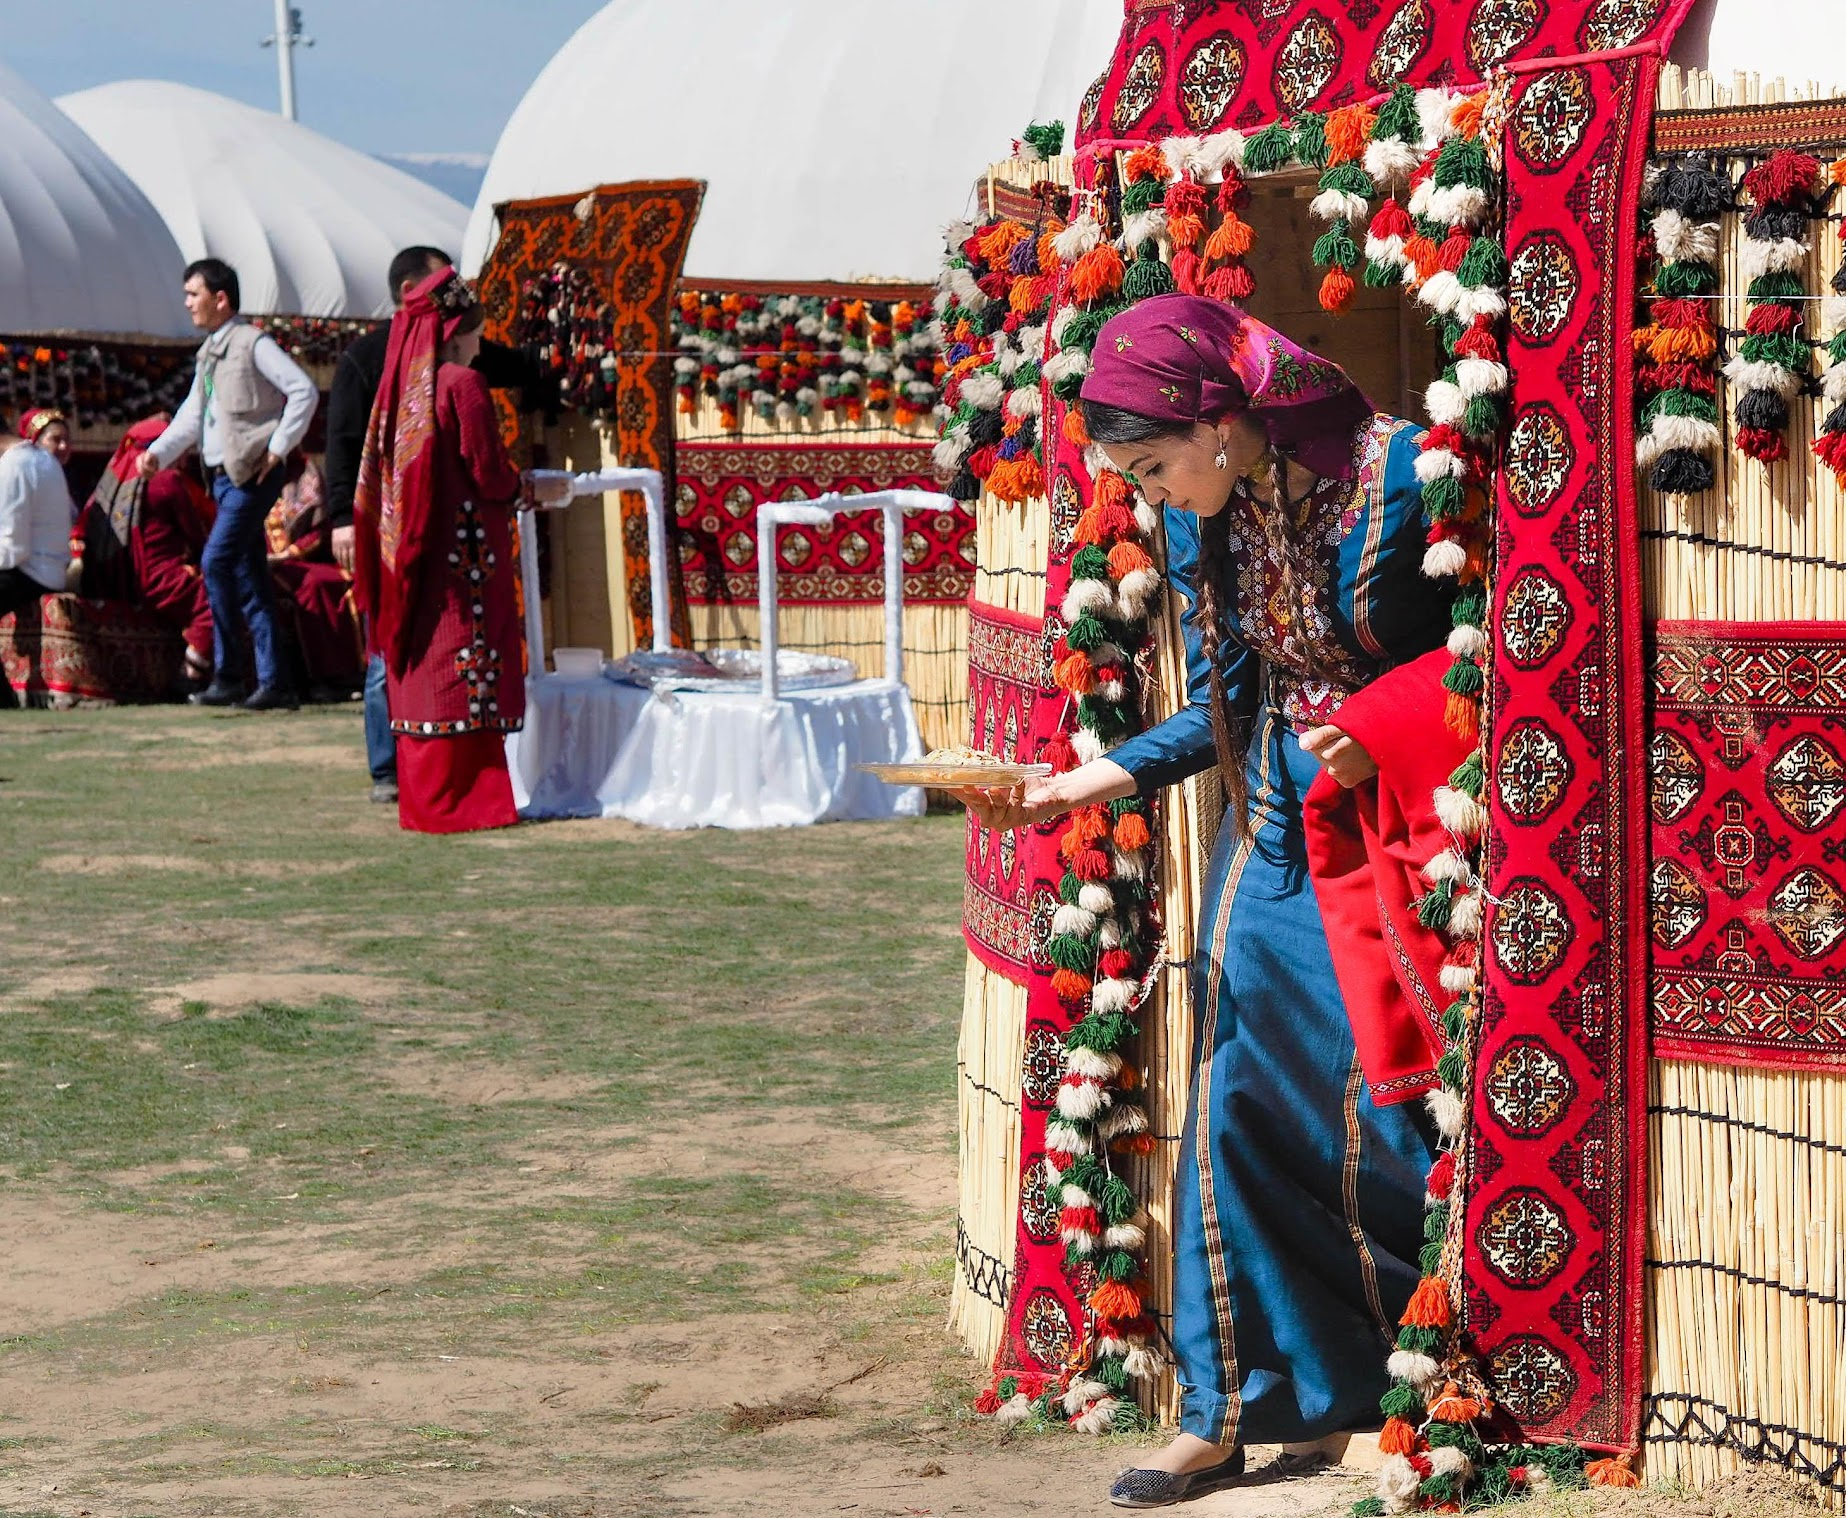 Colorful yurts at Nowruz Festival